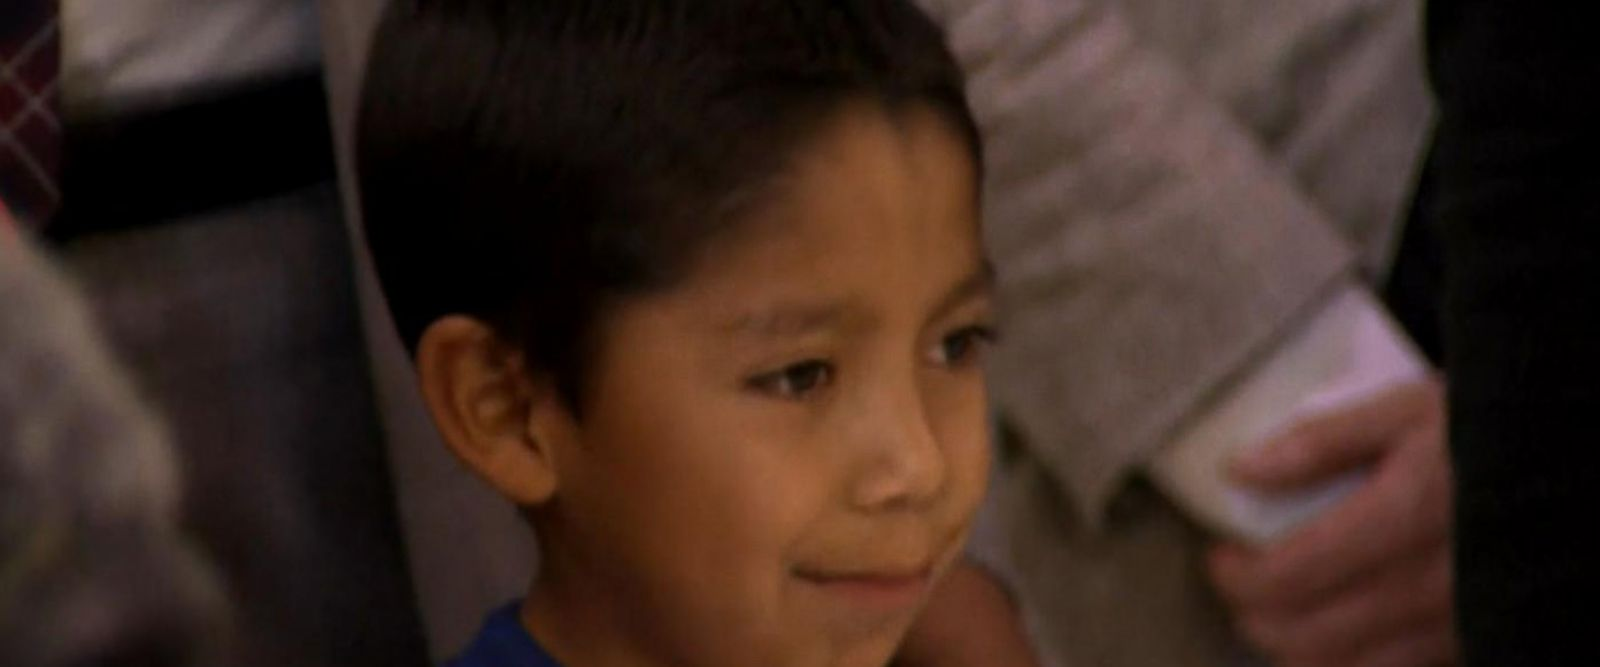 VIDEO: Families hope to reunite with kids as debate over separation at the border continues